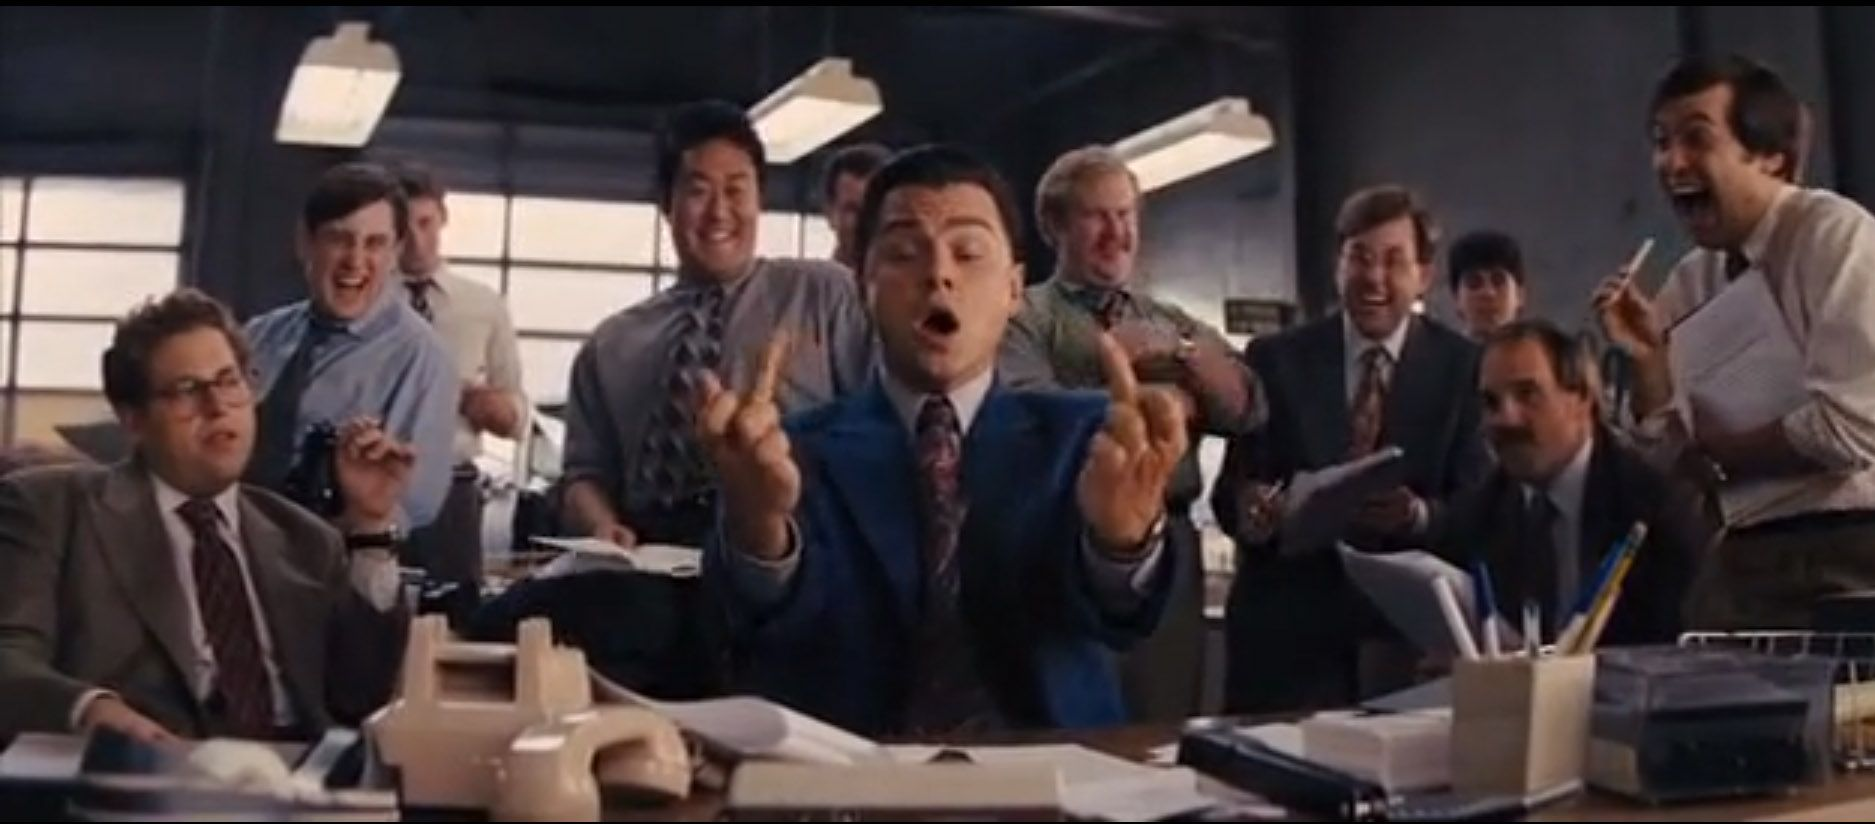 the wolf of wall street yes of course you can trust me on the wolf of wall street id=16281